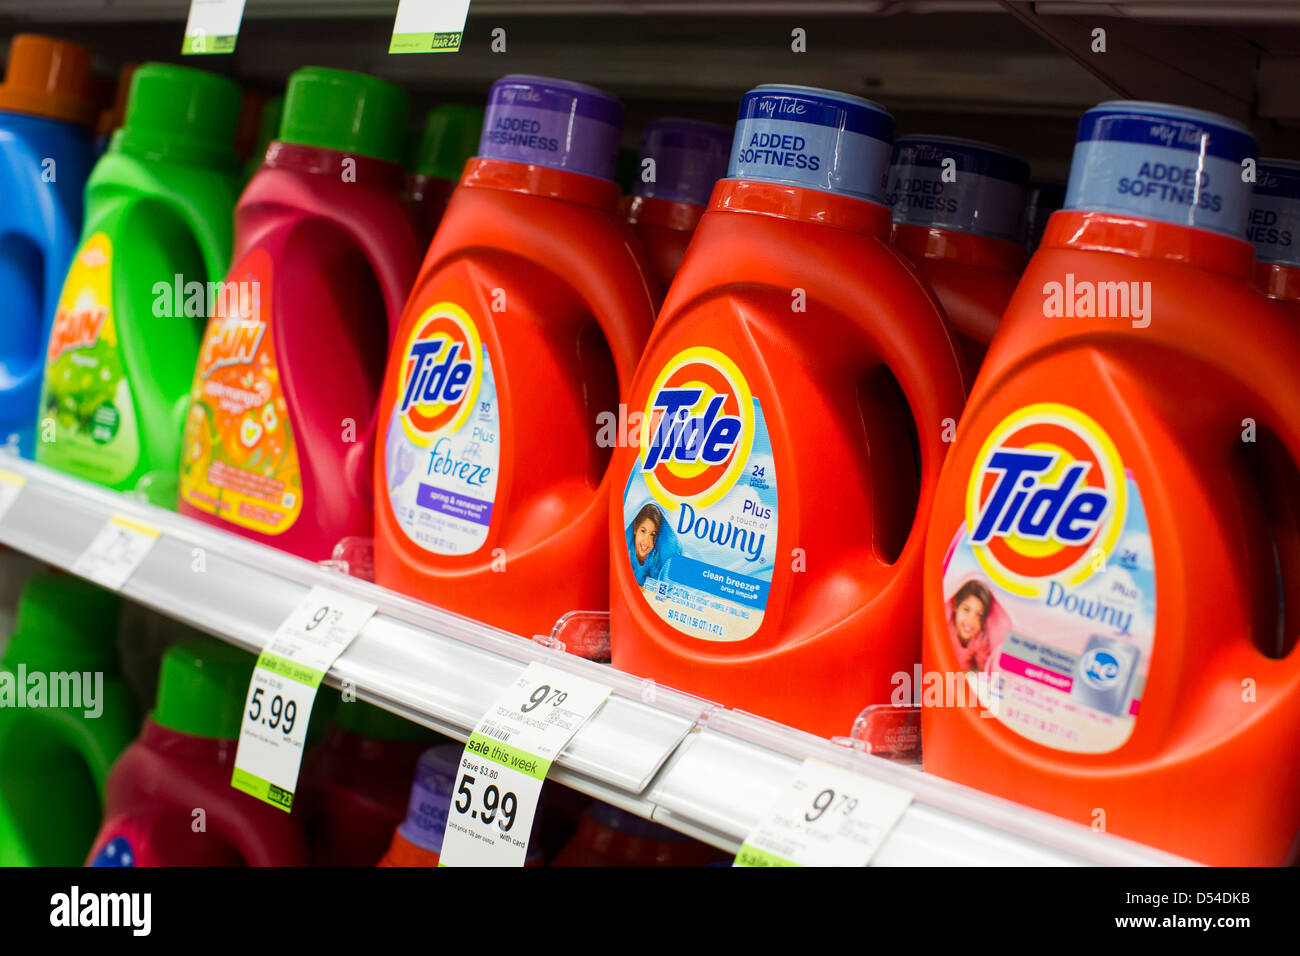 Tide Laundry Detergent On Display At A Walgreens Flagship